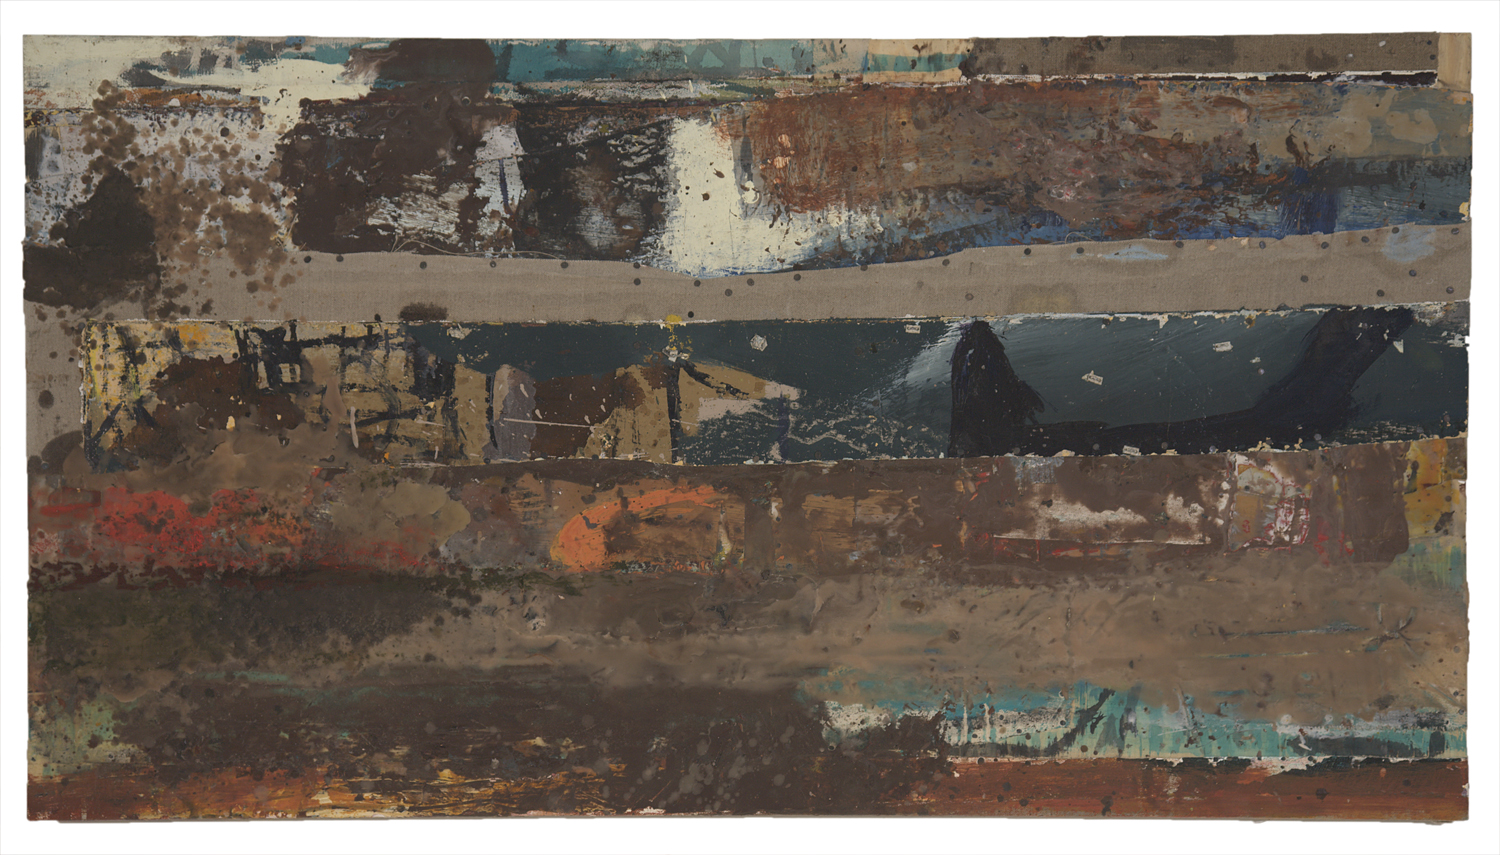 FRAGILE WORLD, 2008  Encaustics and mixed media on panel  24 1/2 x 45 inches